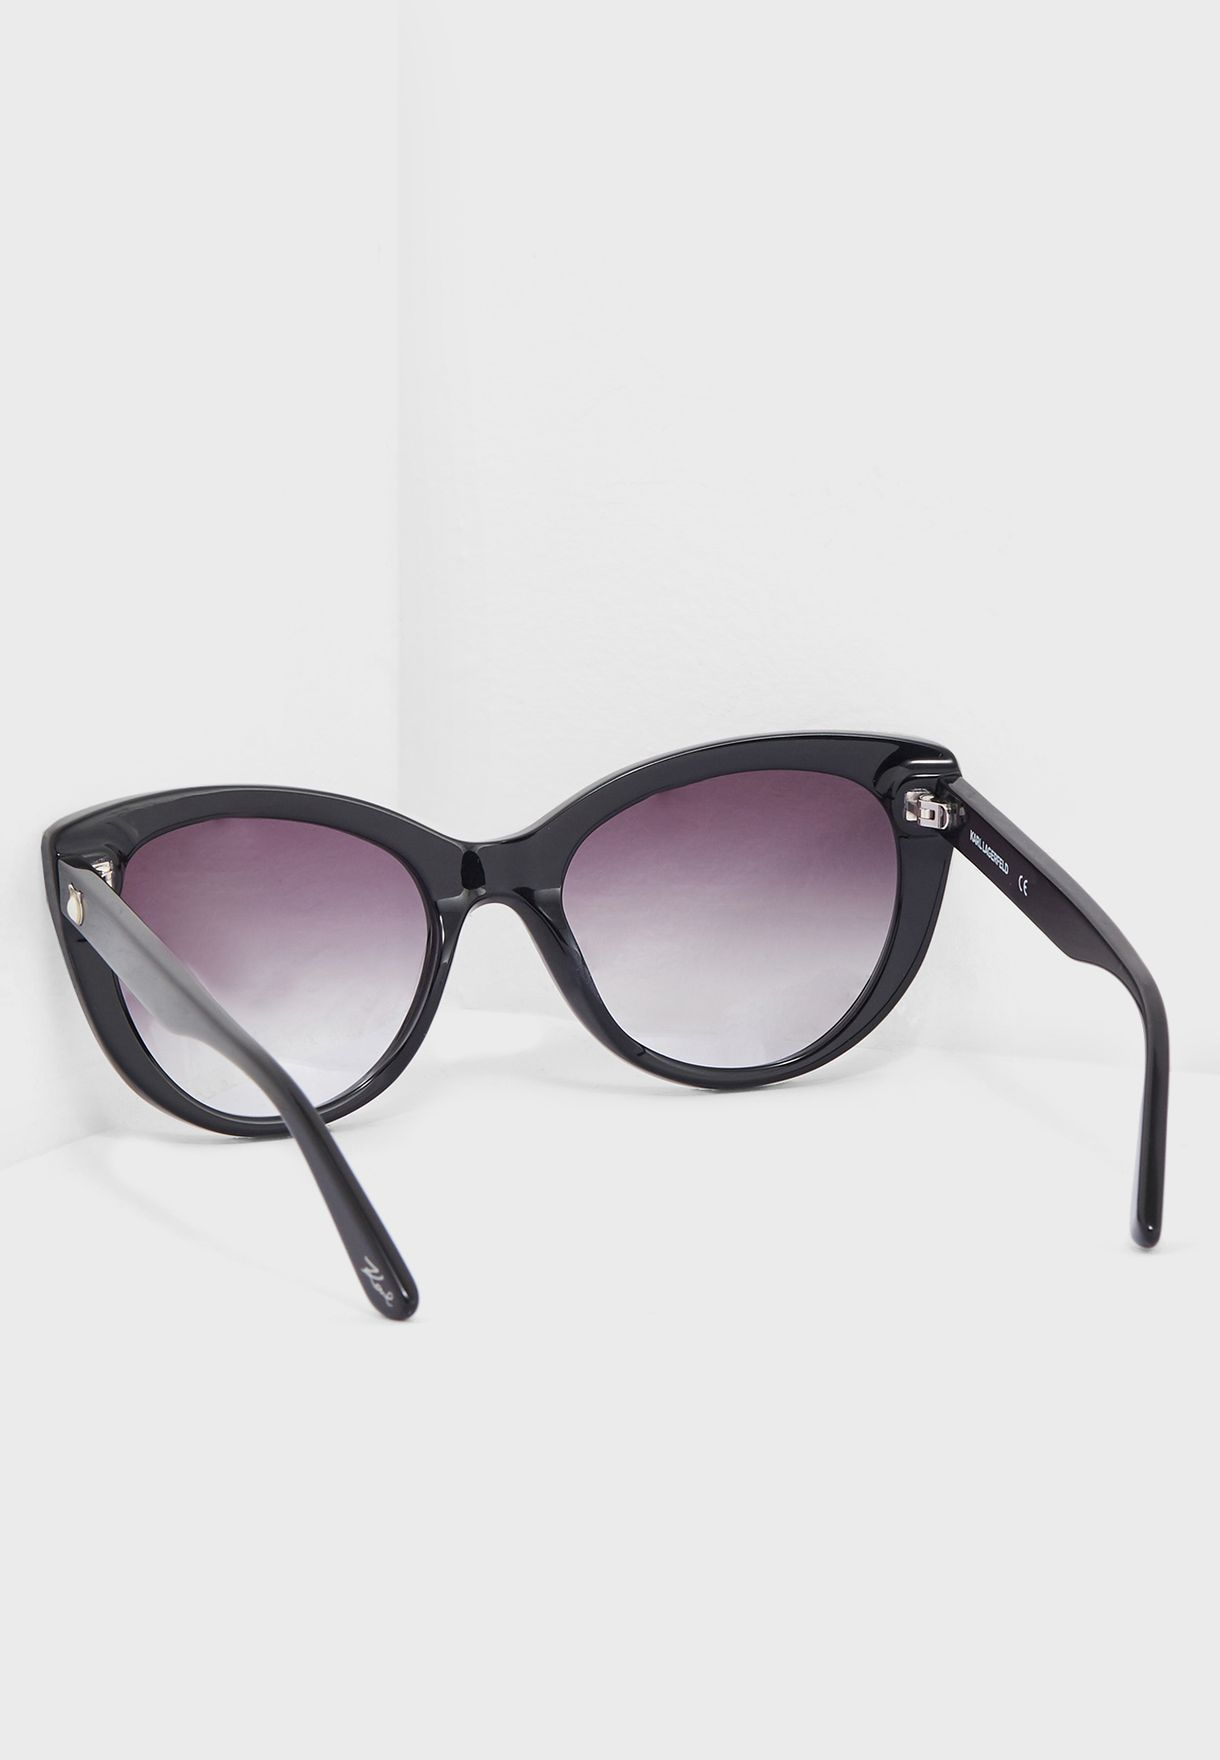 KL966S Cat Eye Sunglasses